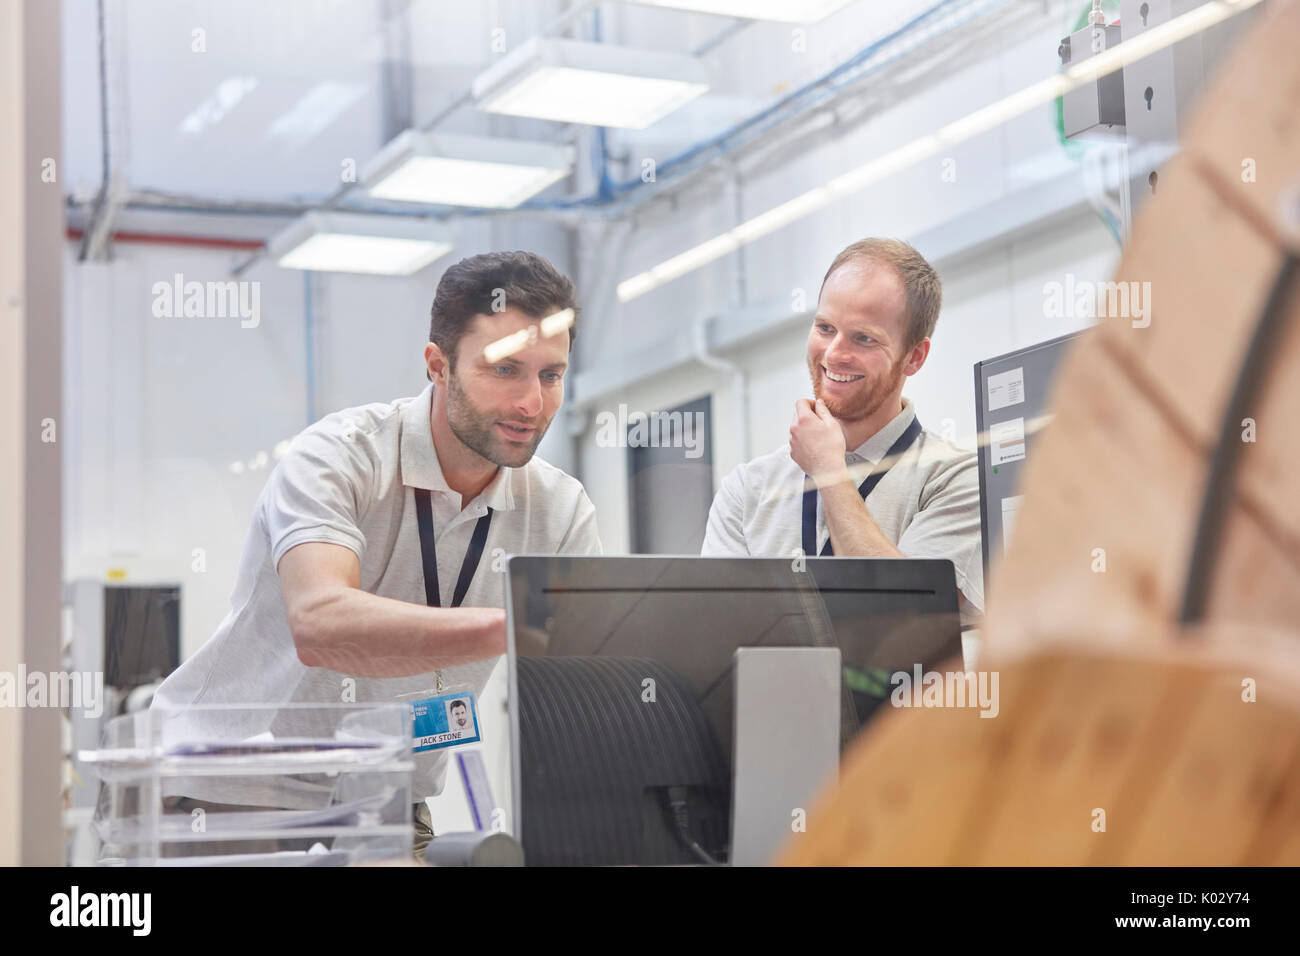 Male supervisors working at computer in factory office - Stock Image